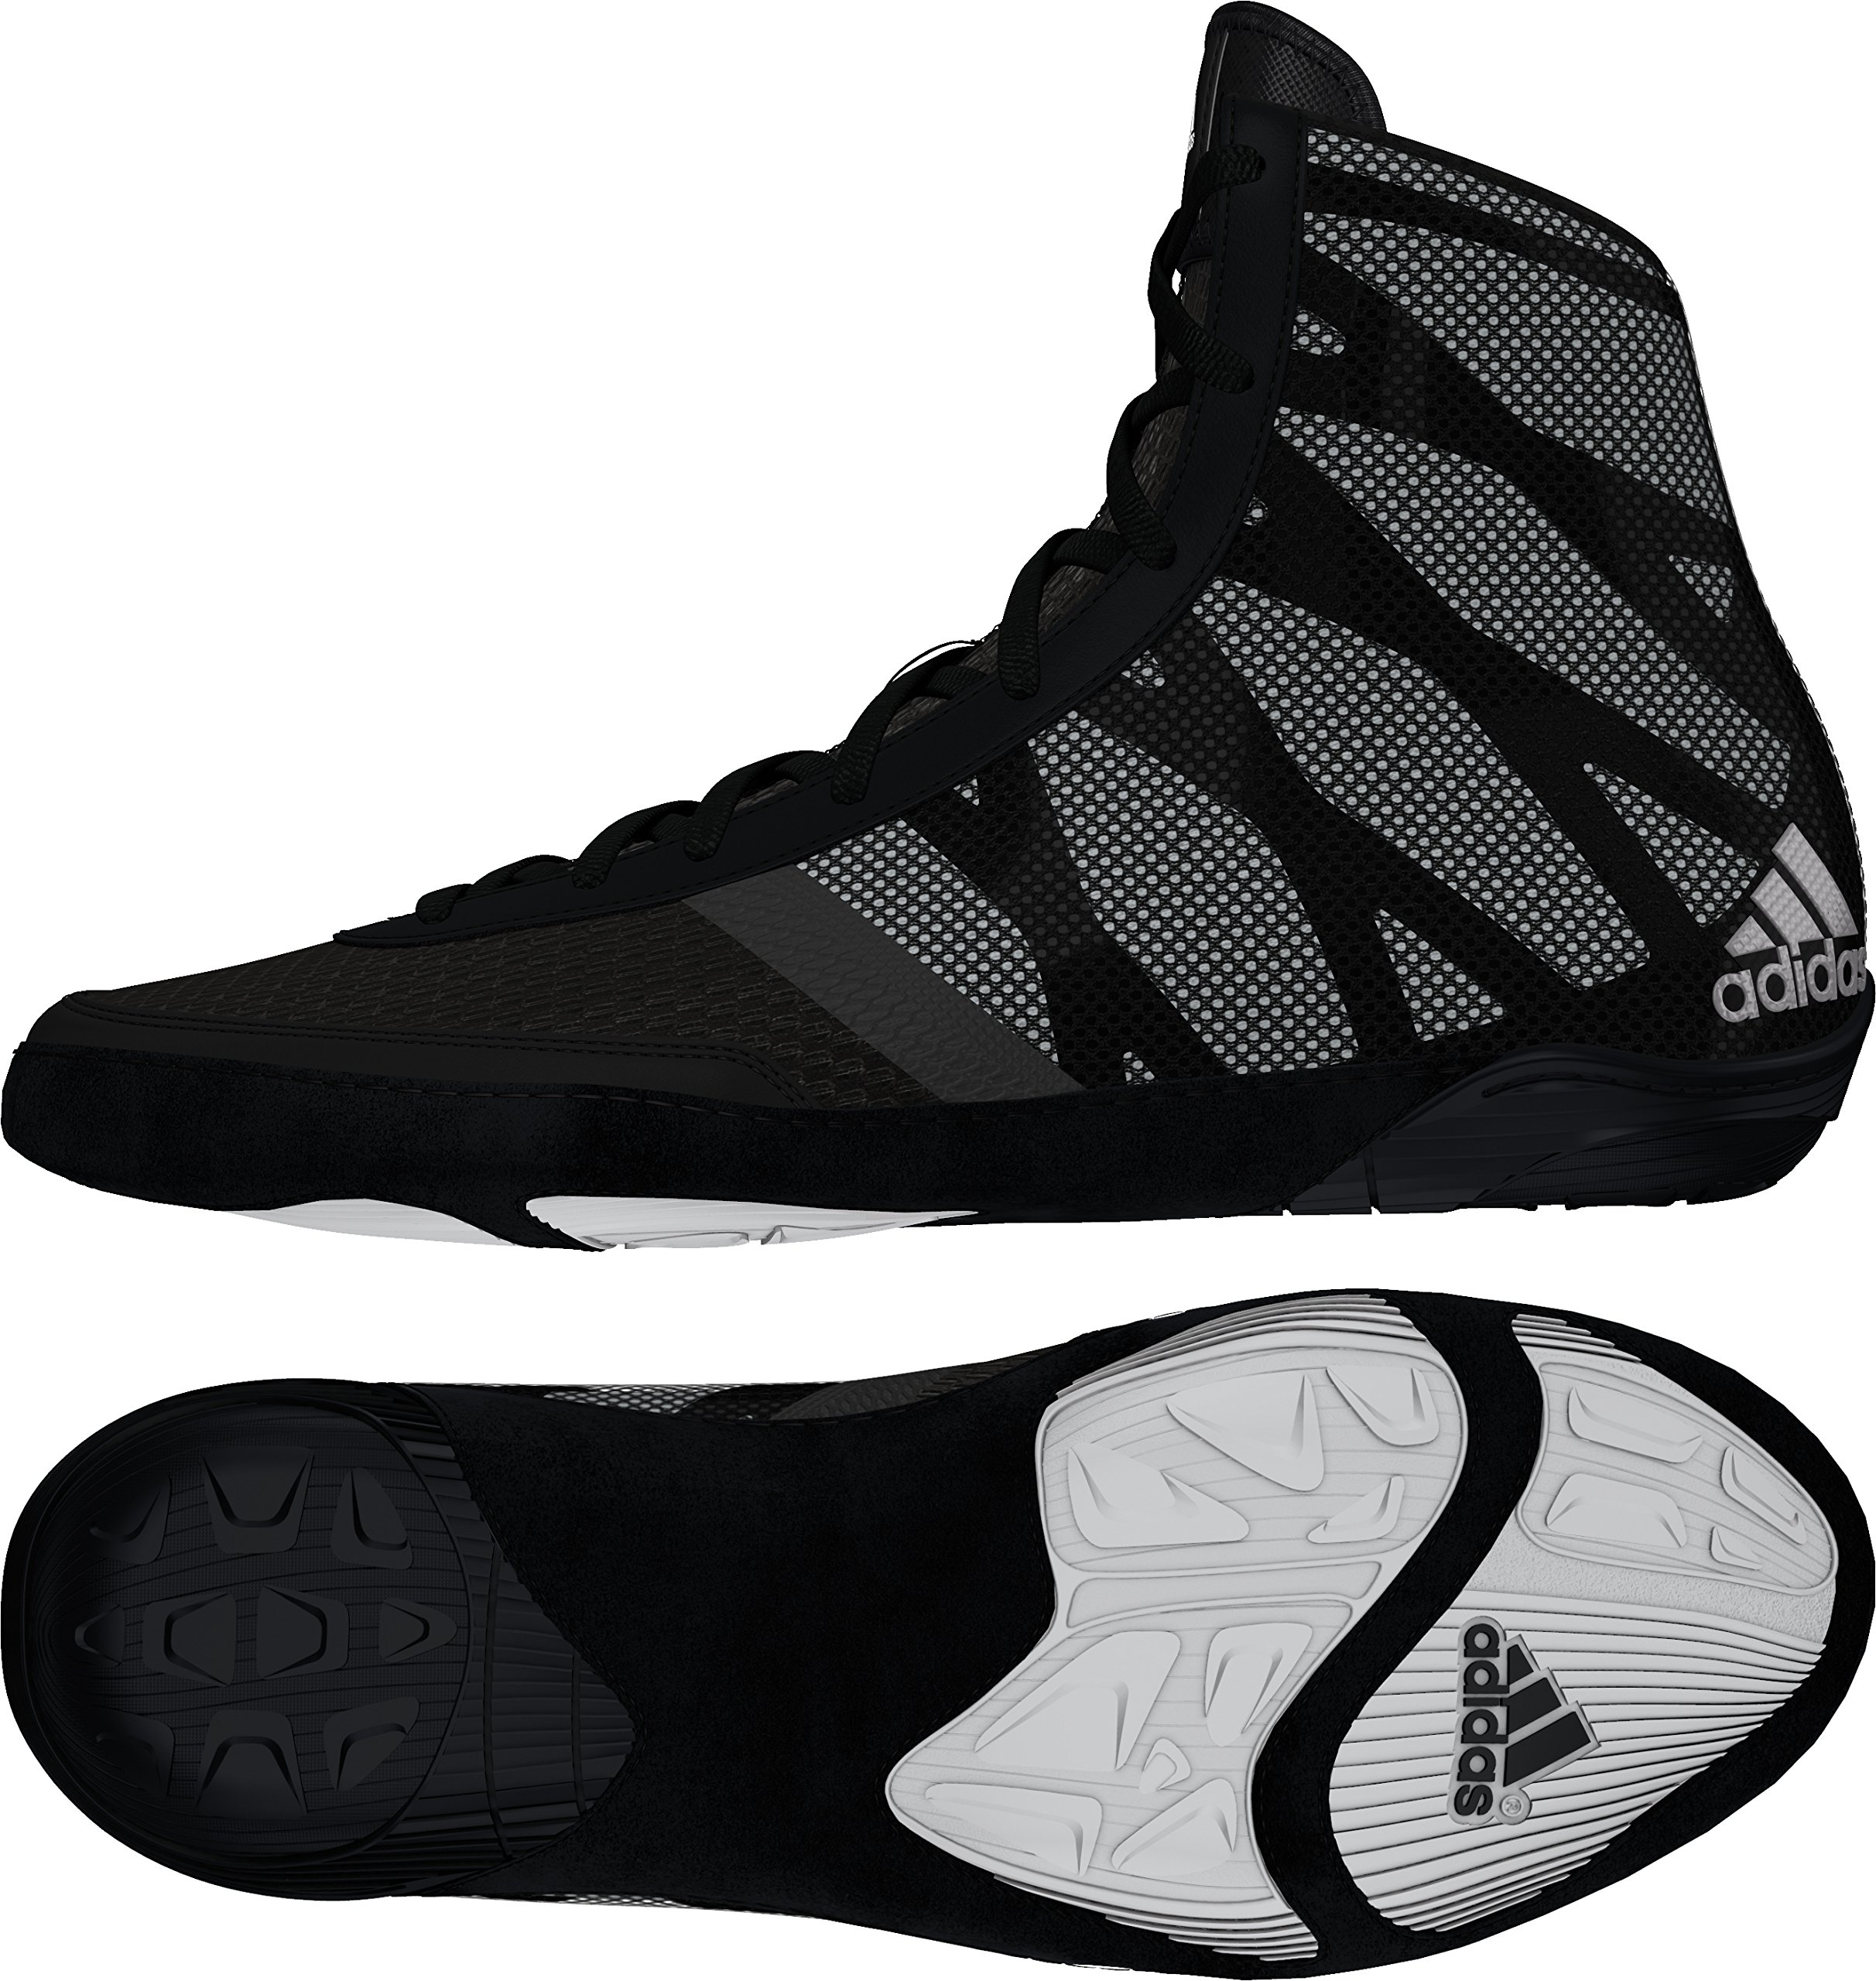 Adidas Pretereo III Wrestling Shoes - Black/Silver/White - 9.5